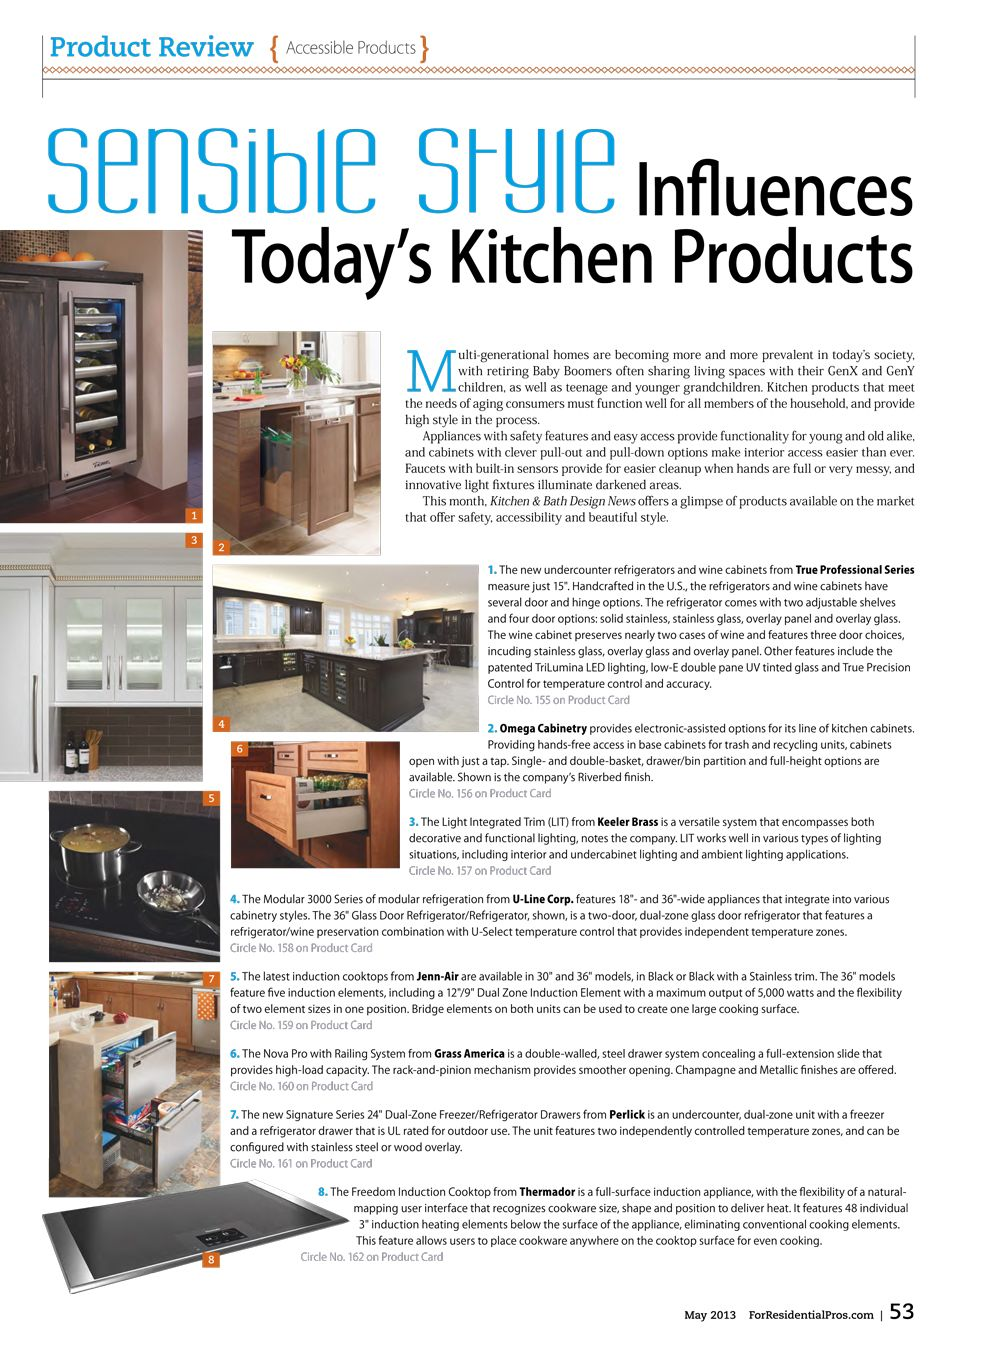 """Sensible Style Influences Today's Kitchen Products ..."